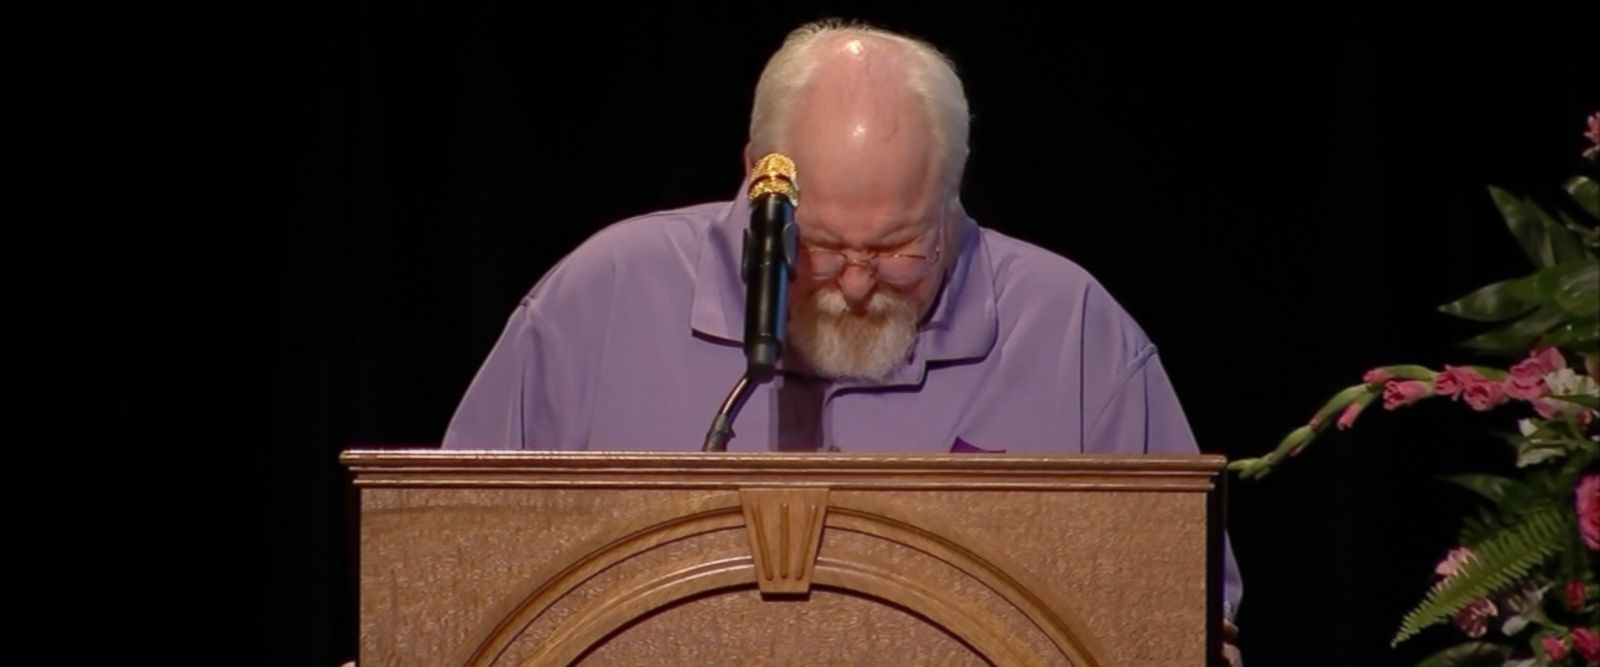 """And as I listened to her friends, and hear stories of my daughter and the way she was, she loved people,"" Heather Heyer's father, Mark Heyer, said during her memorial service today."